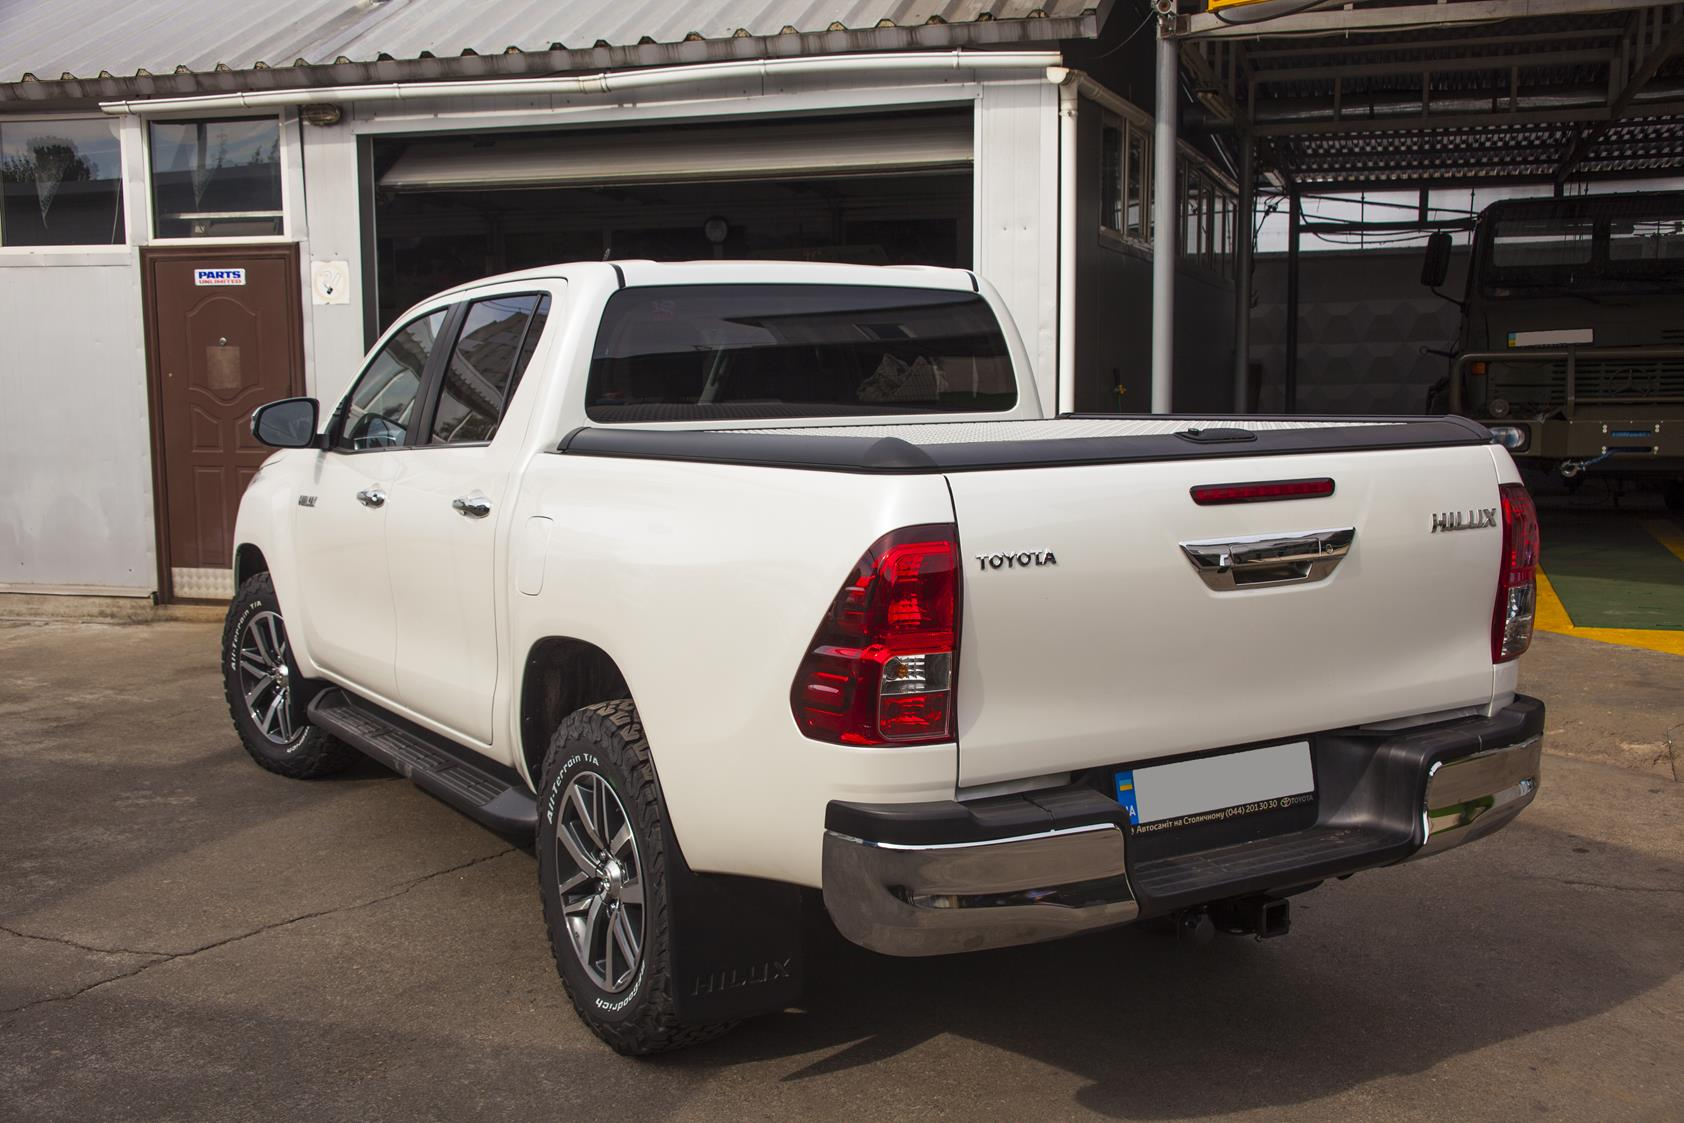 Toyota_Hilux_2016_Winch6